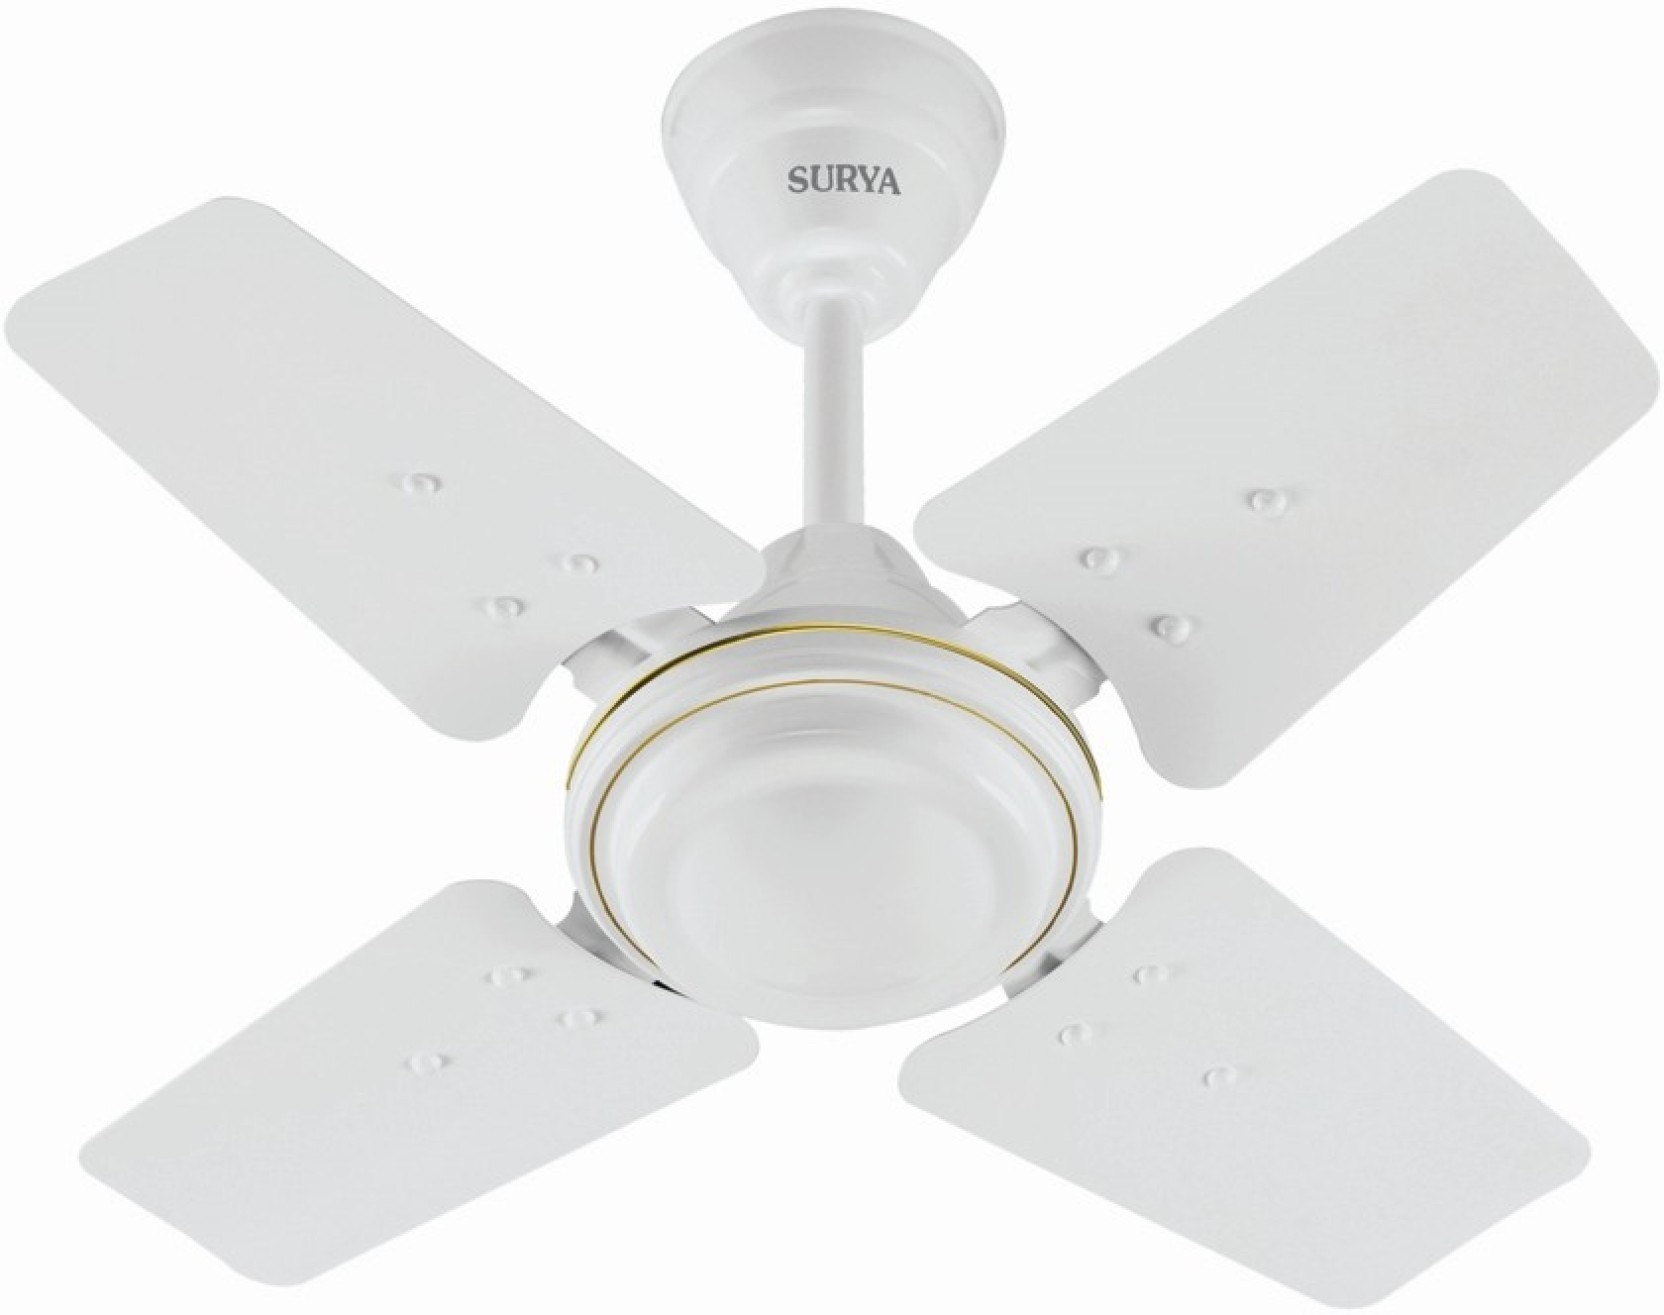 Surya Sparrow 600mm 24inch 4 Blade Ceiling Fan Price in India